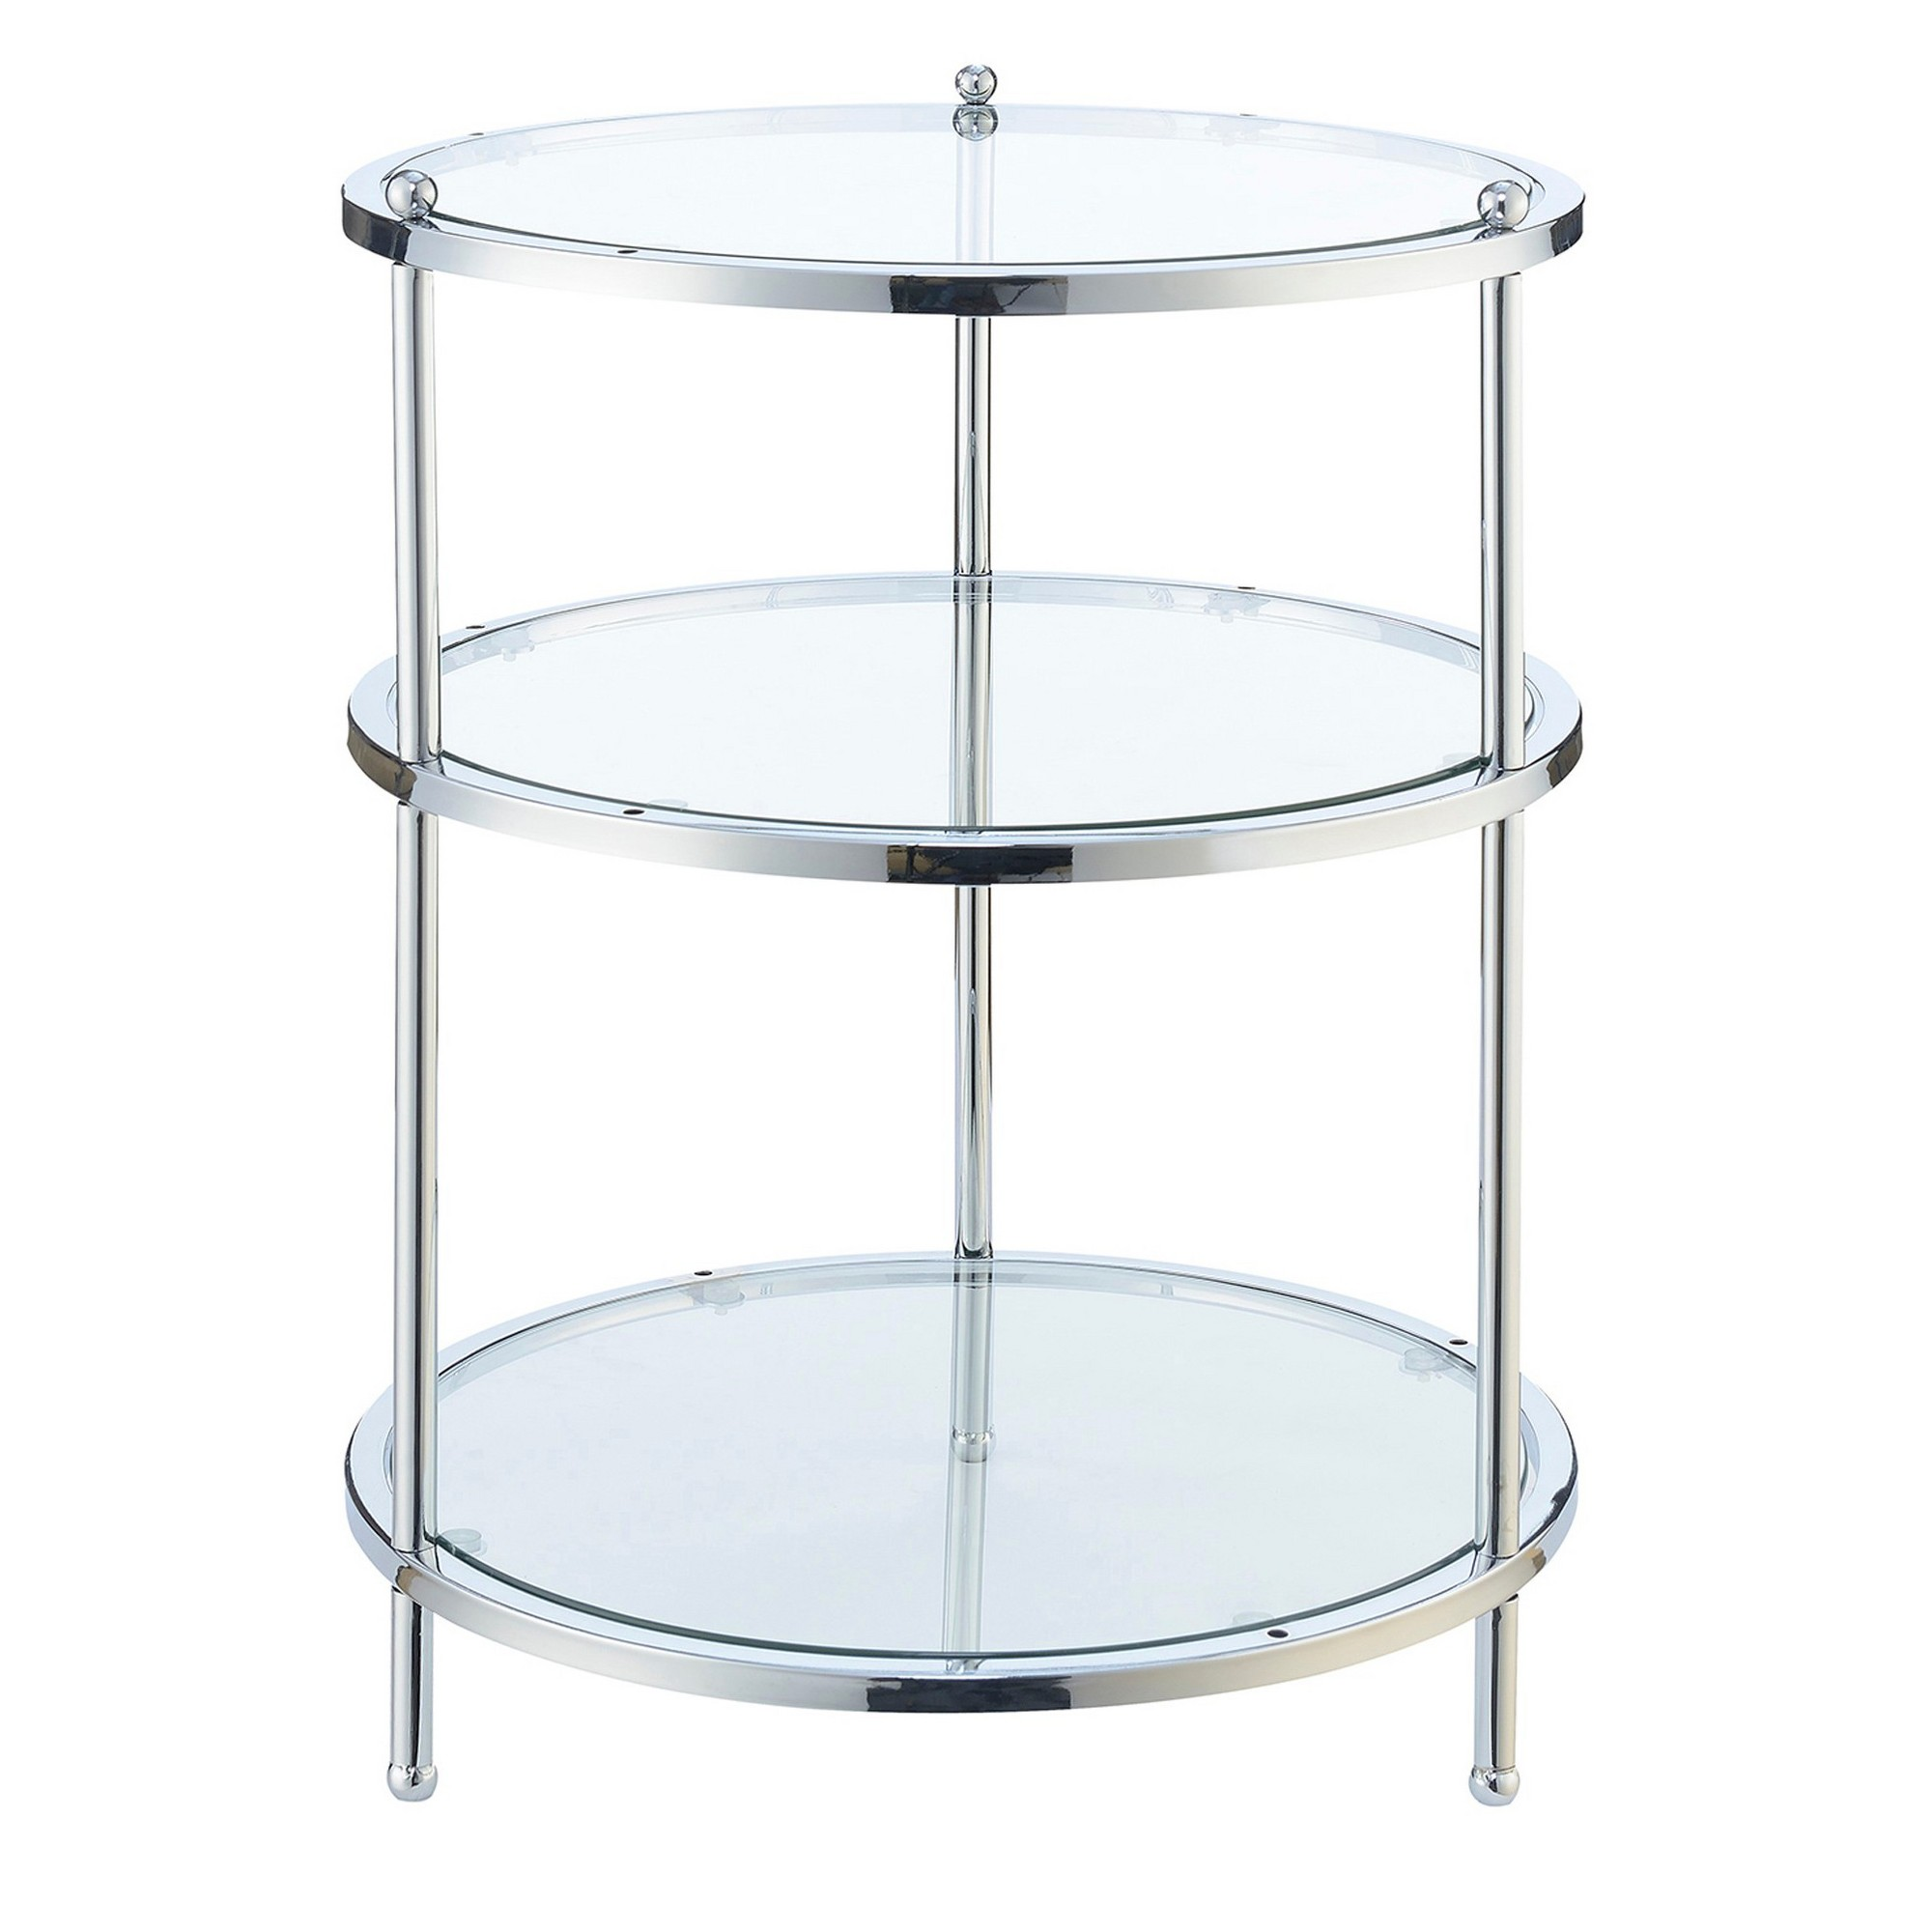 Royal Crest 3 Tier Round End Table Chrome Glass Johar Furniture End Tables Glass End Tables Table